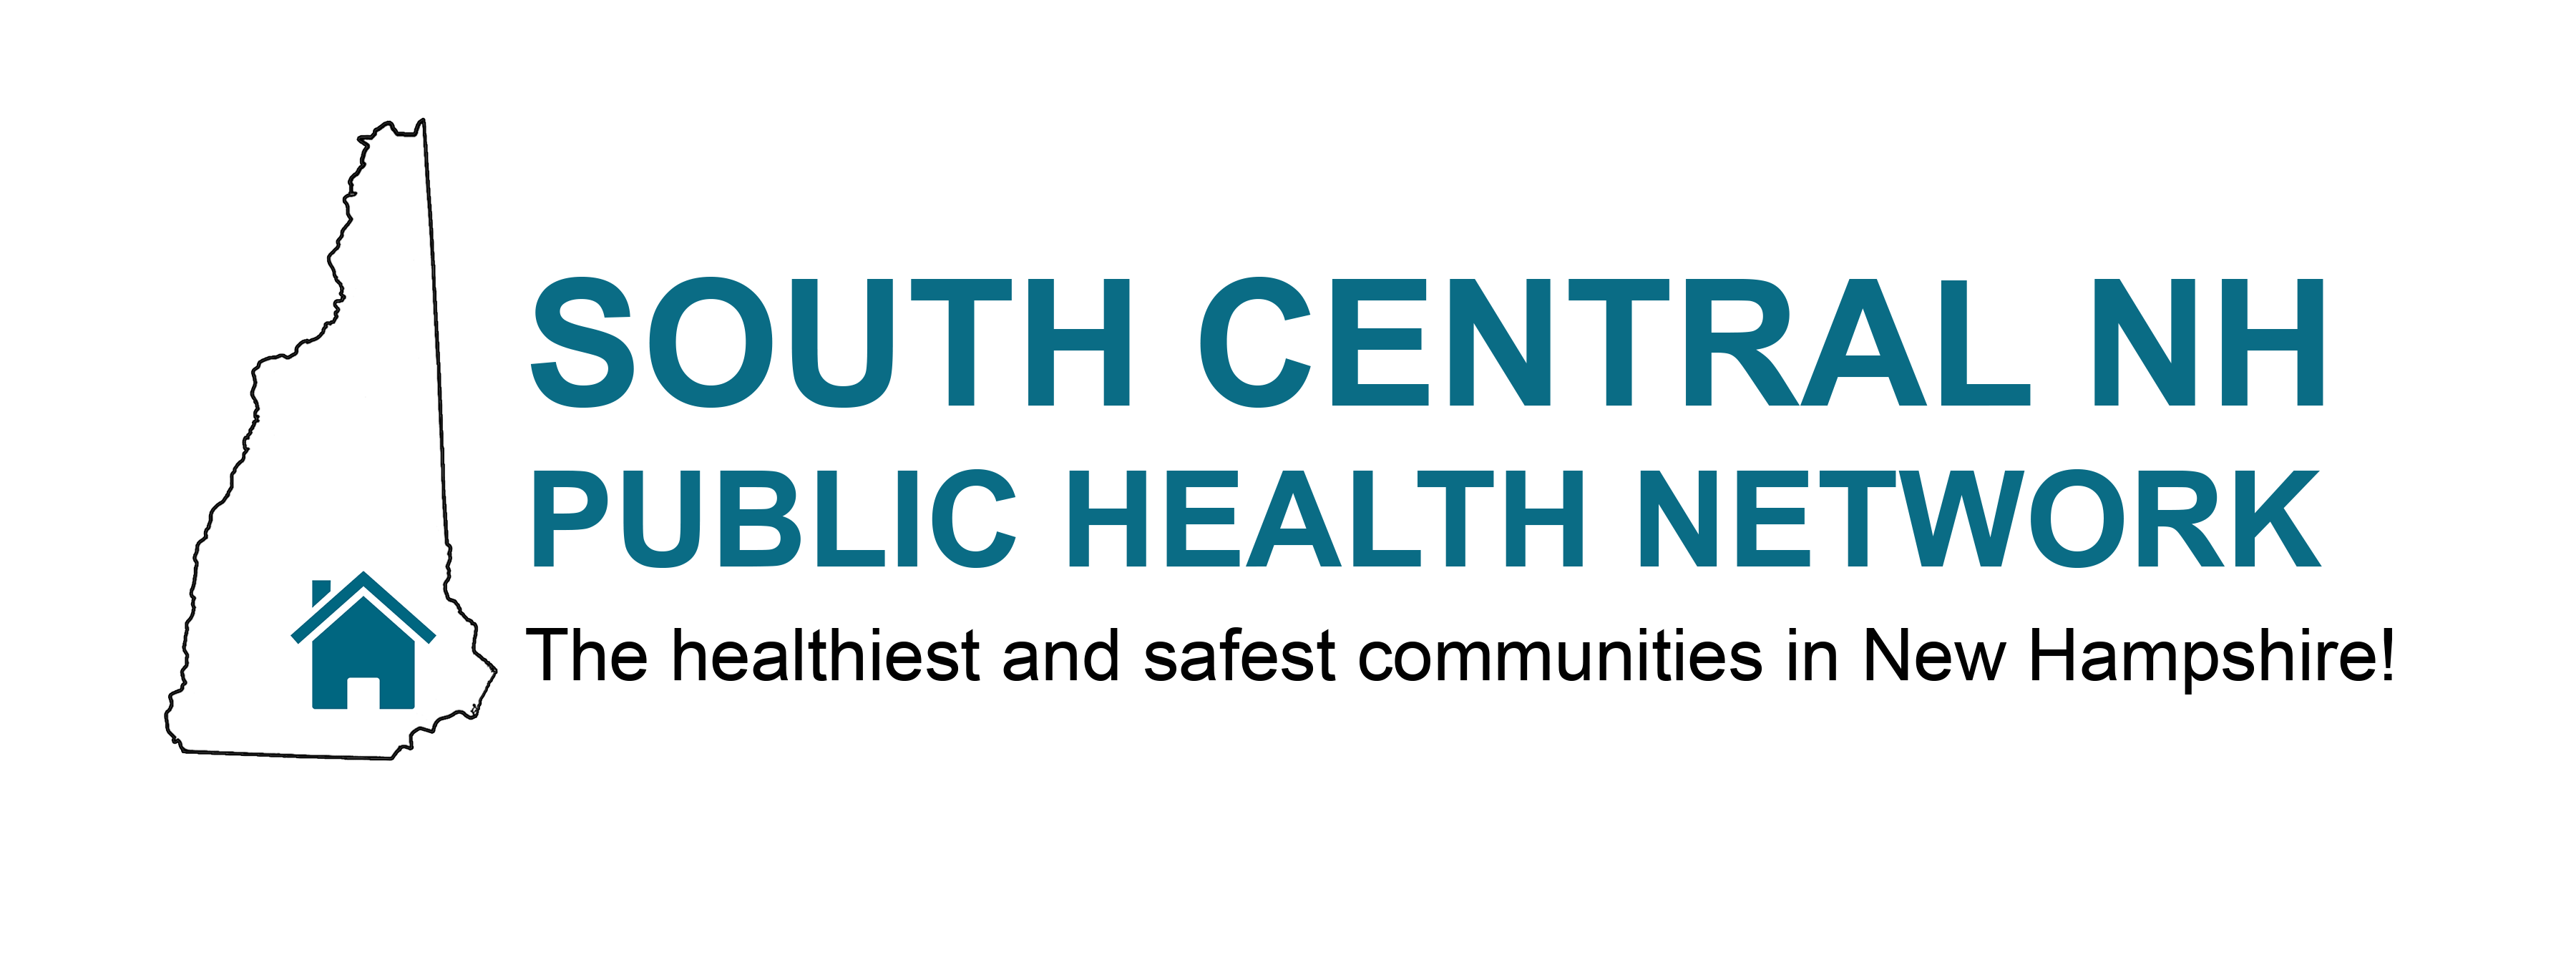 The South Central Public Health Network's Emergency Preparedness Task Force